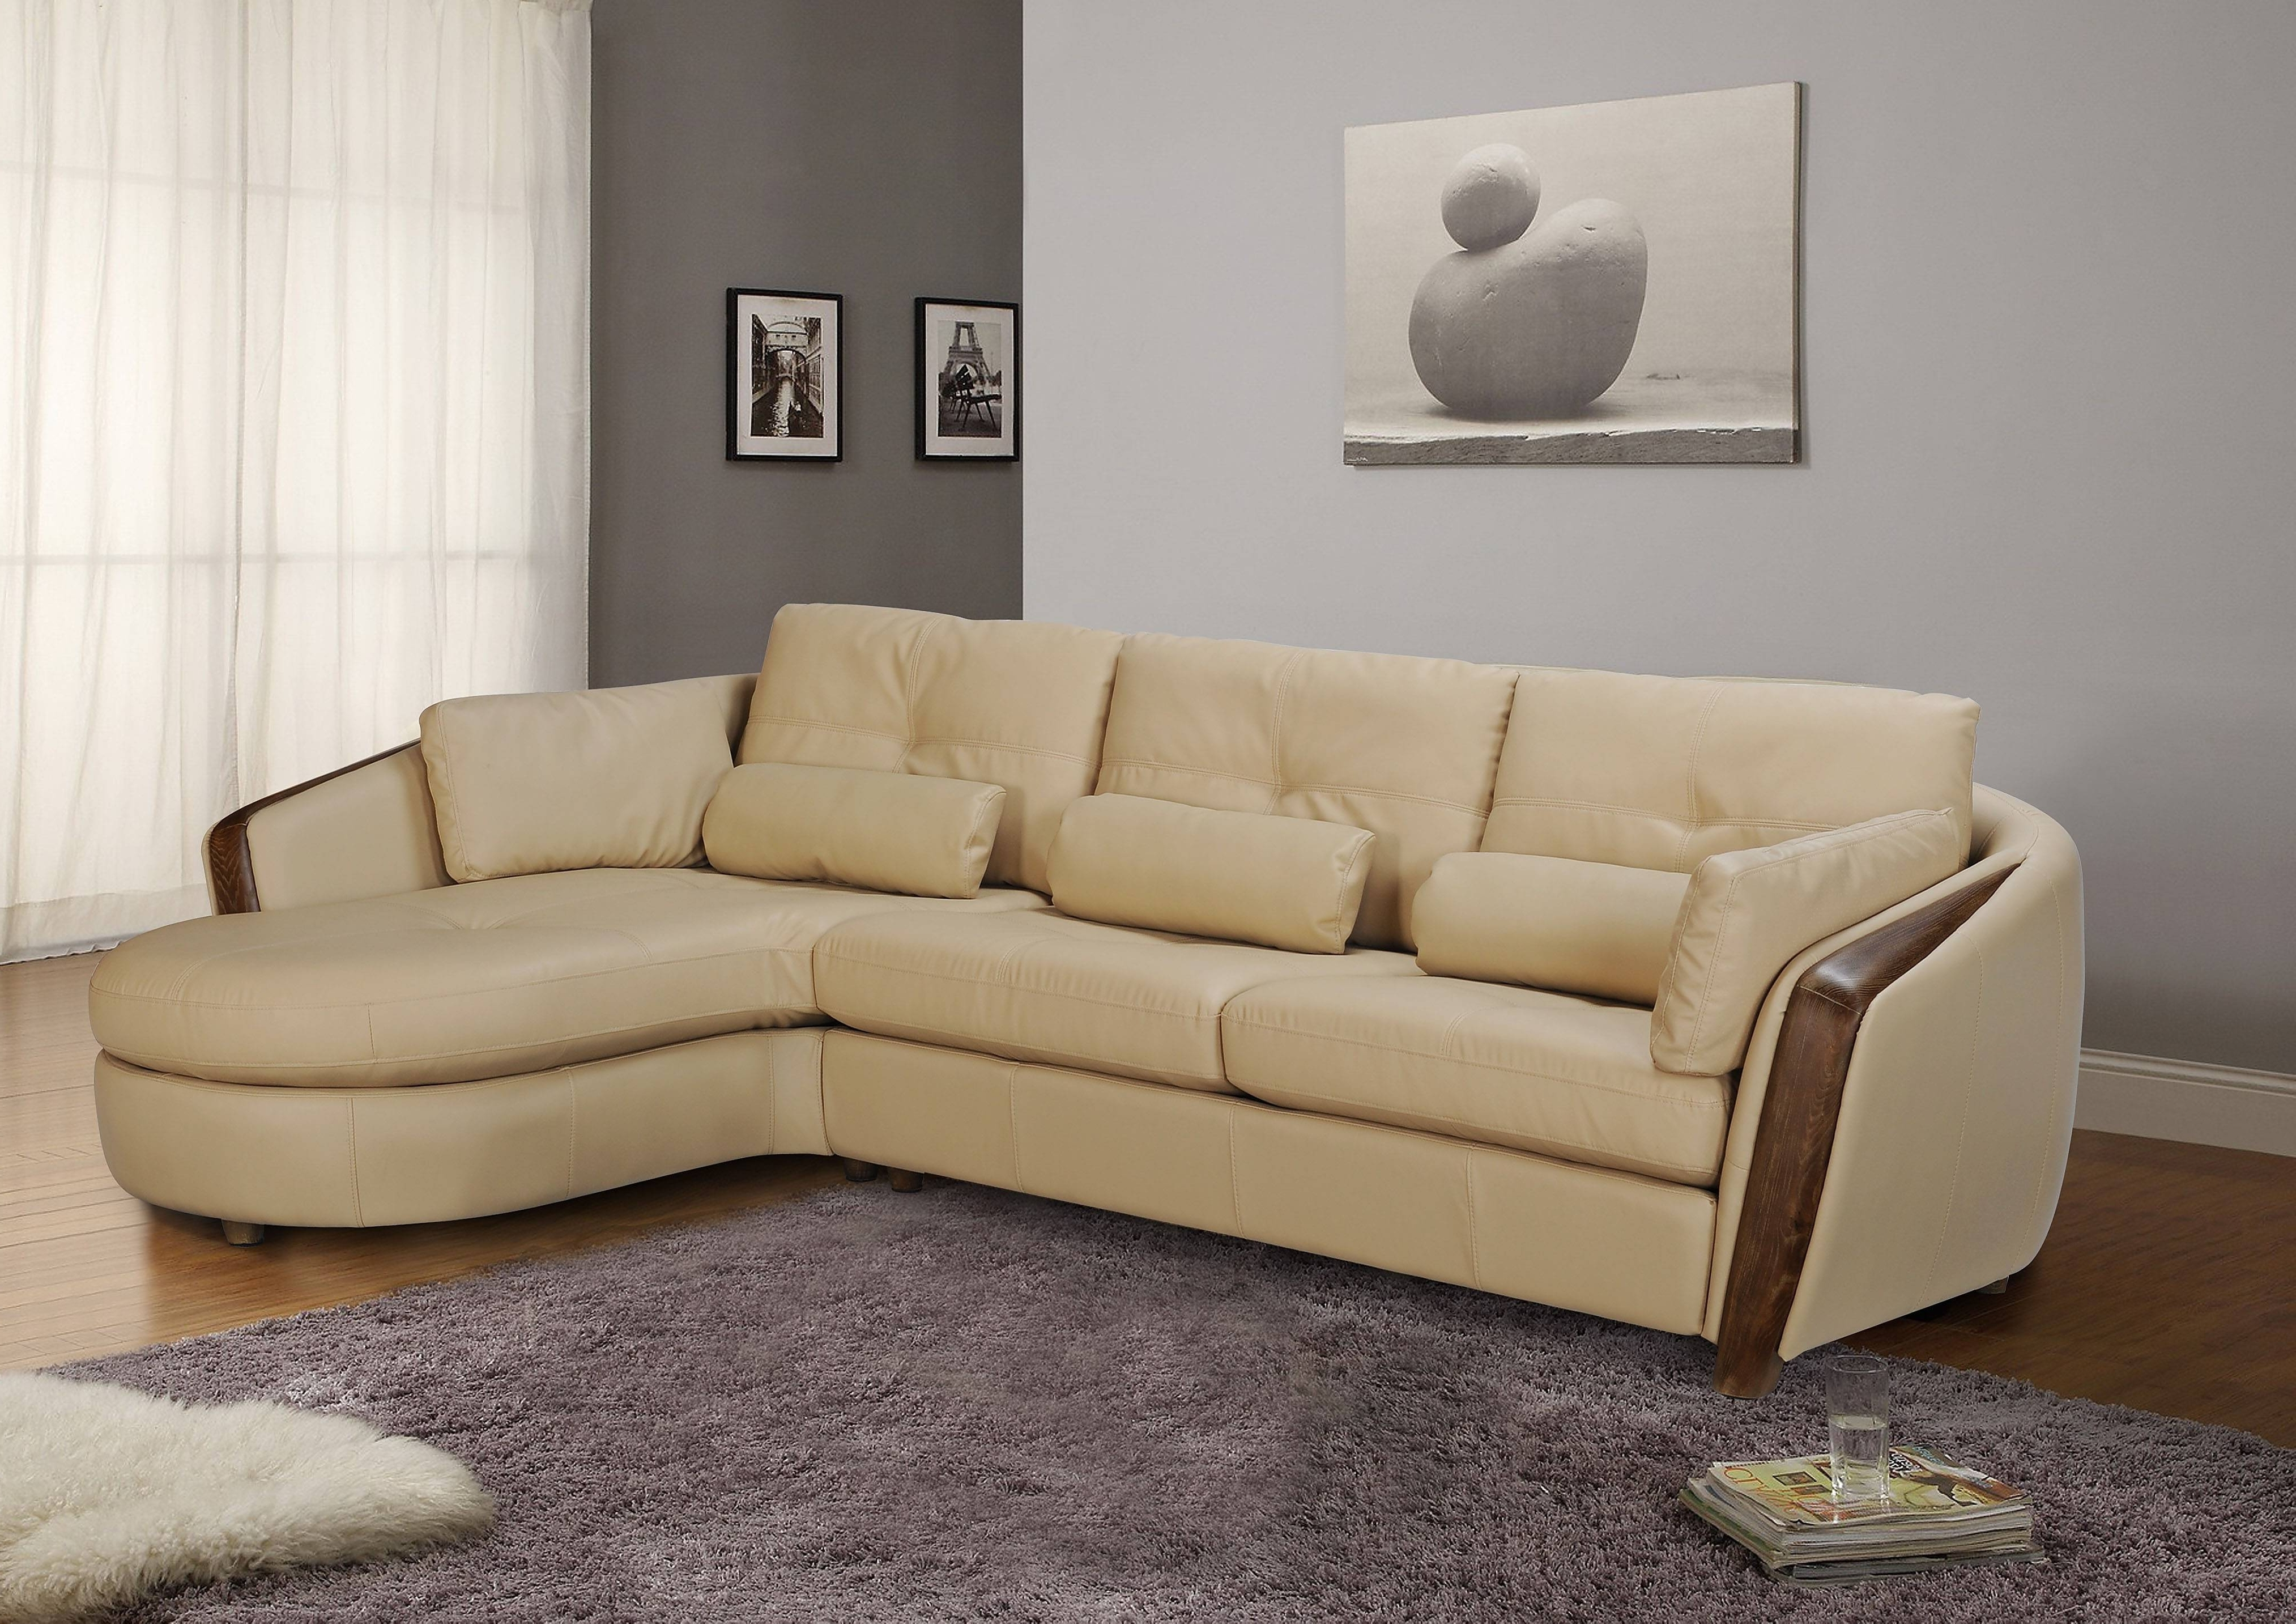 Ontario Sectional Sofas In Fashionable Taupe Bonded Leather Sectional Sofa With Ash Wood Accent Baltimore (View 8 of 15)